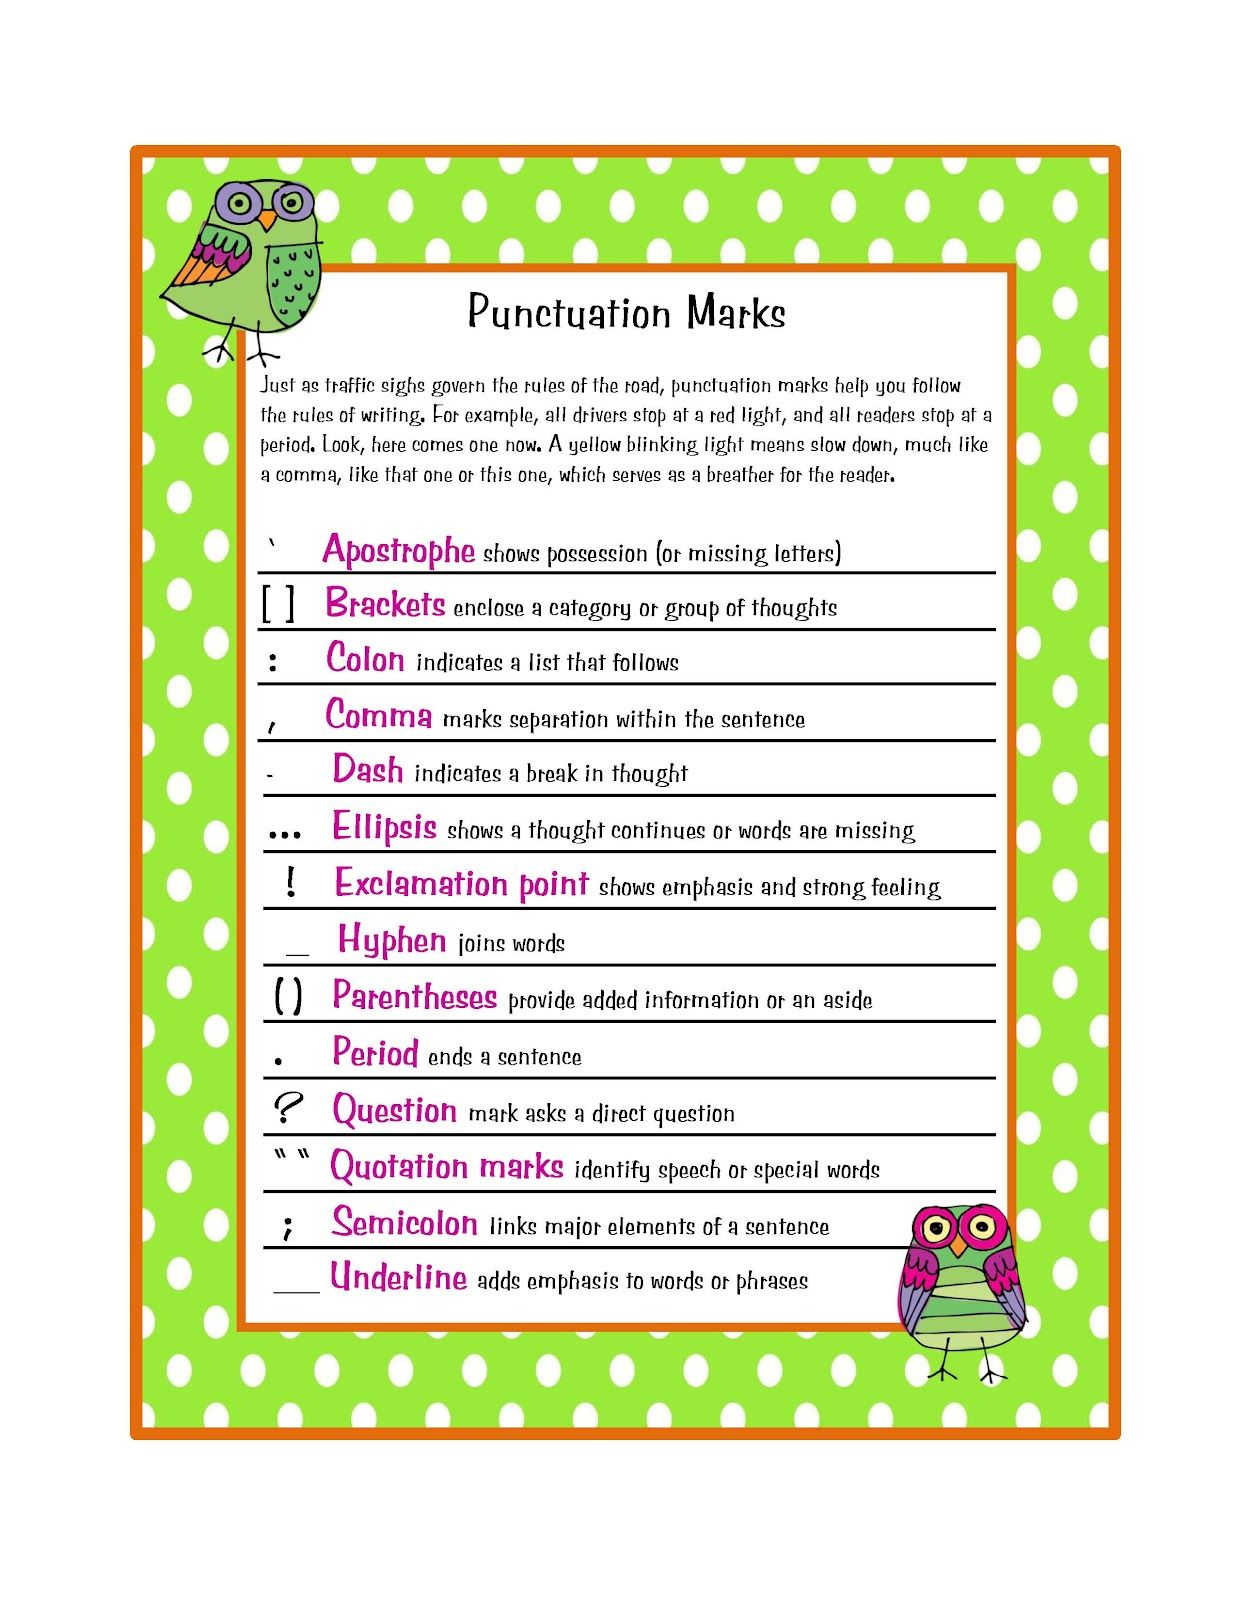 Free Punctuation Marks Poster  Preschool Printables By Gwyn